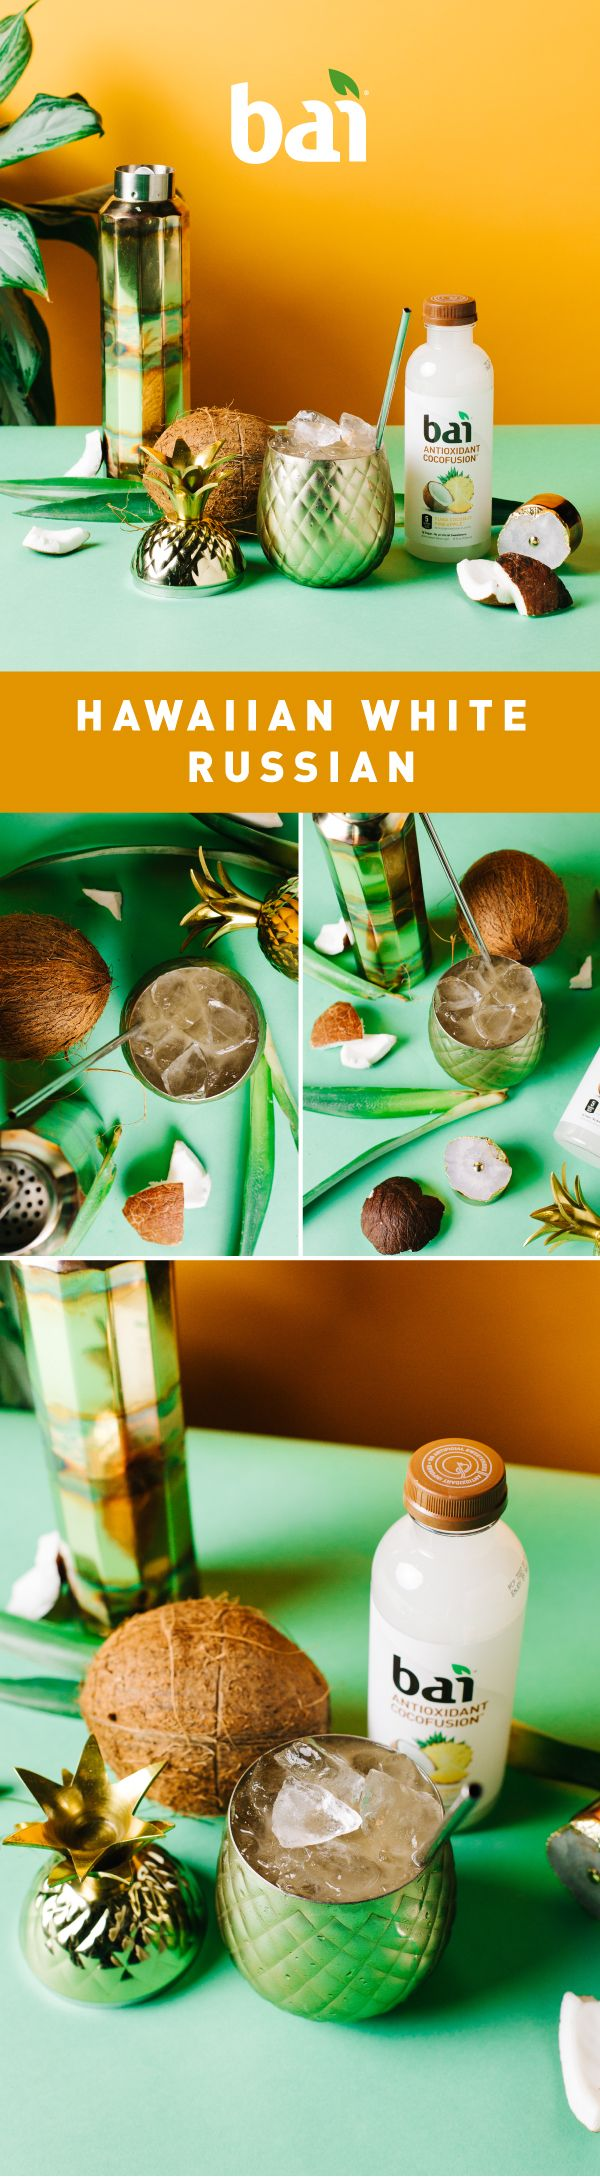 This Hawaiian White Russian will make you go from blizzard to beach day with just one sip. Featuring Bai Puna Coconut Pineapple, a tropical refreshment with just 5 calories, 1 gram of sugar and no artificial sweeteners. Please drink responsibly. Must be 21+.